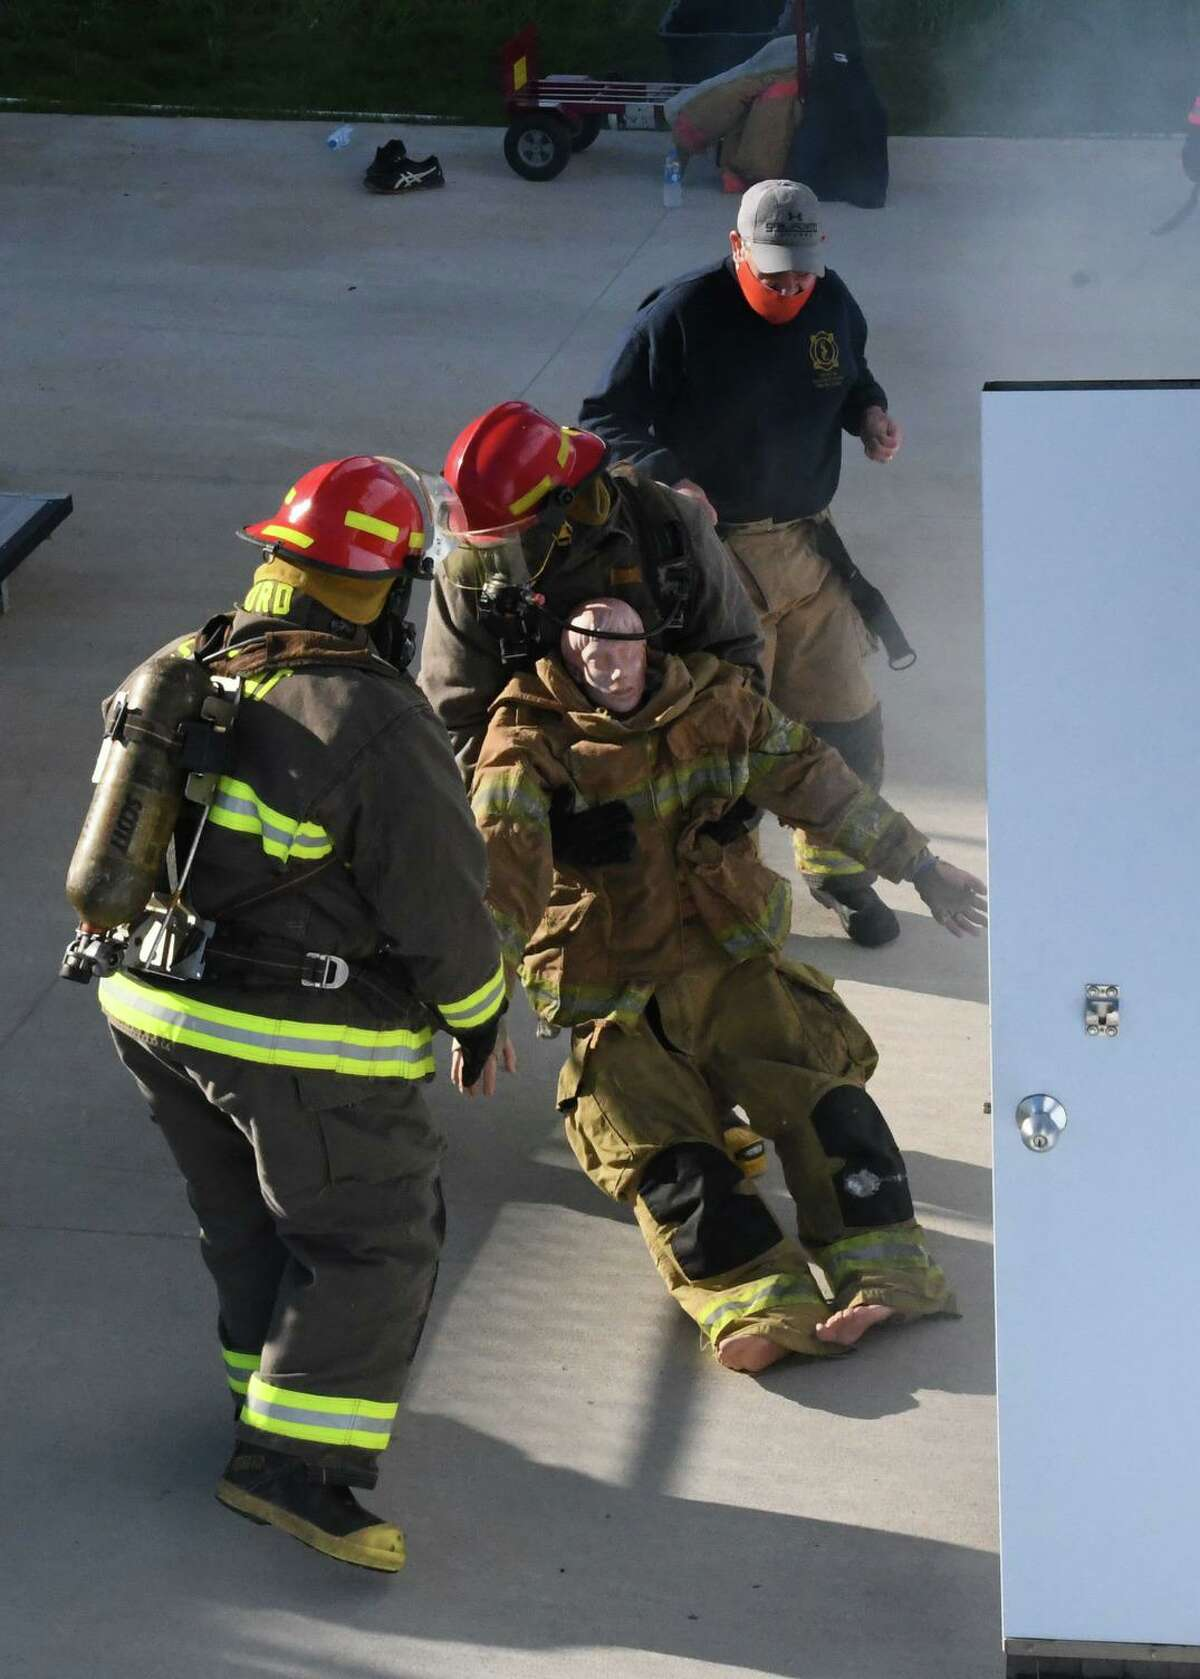 The field is equipped with a confined space entry hatch used to train for vertical entry into a confined space. The field also gives trainees the opportunity to utilize portable extinguishers to fight different types of fires.